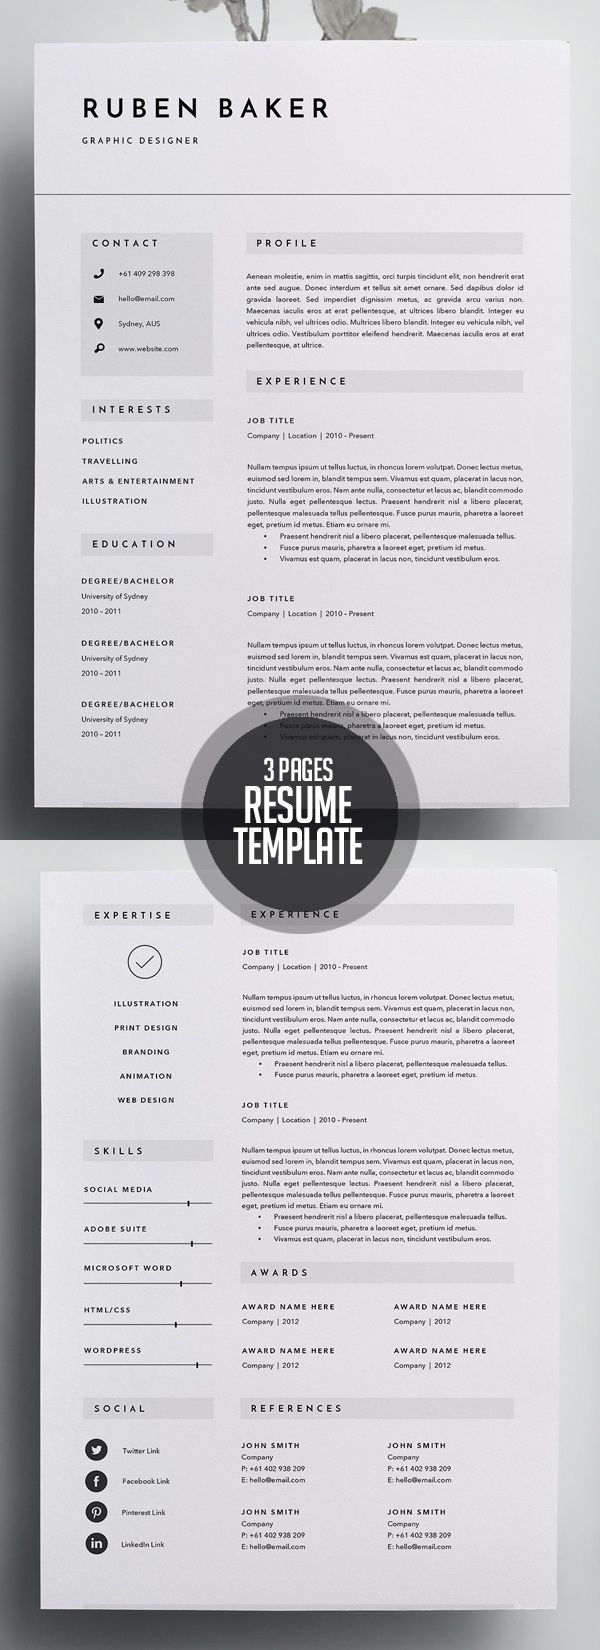 Creative 3 Page Resume Template #minimalresume #psdresume #resumetemplates #clean #minimal #job #word